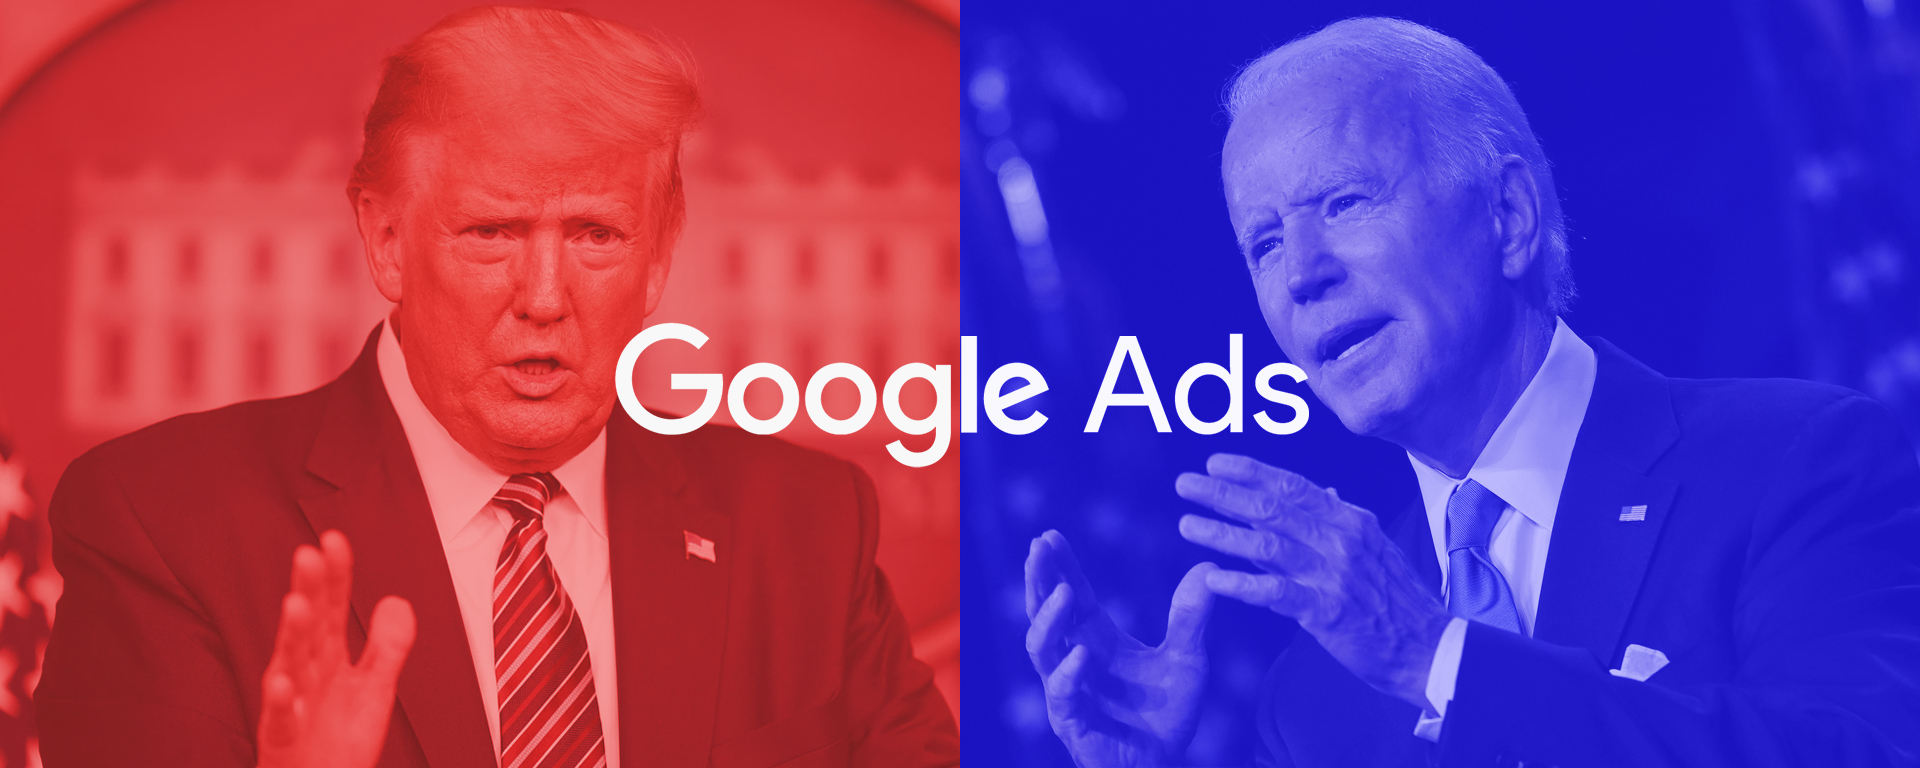 Google to Ban Election-Related Ads Once US Polls Close on Nov. 3rd